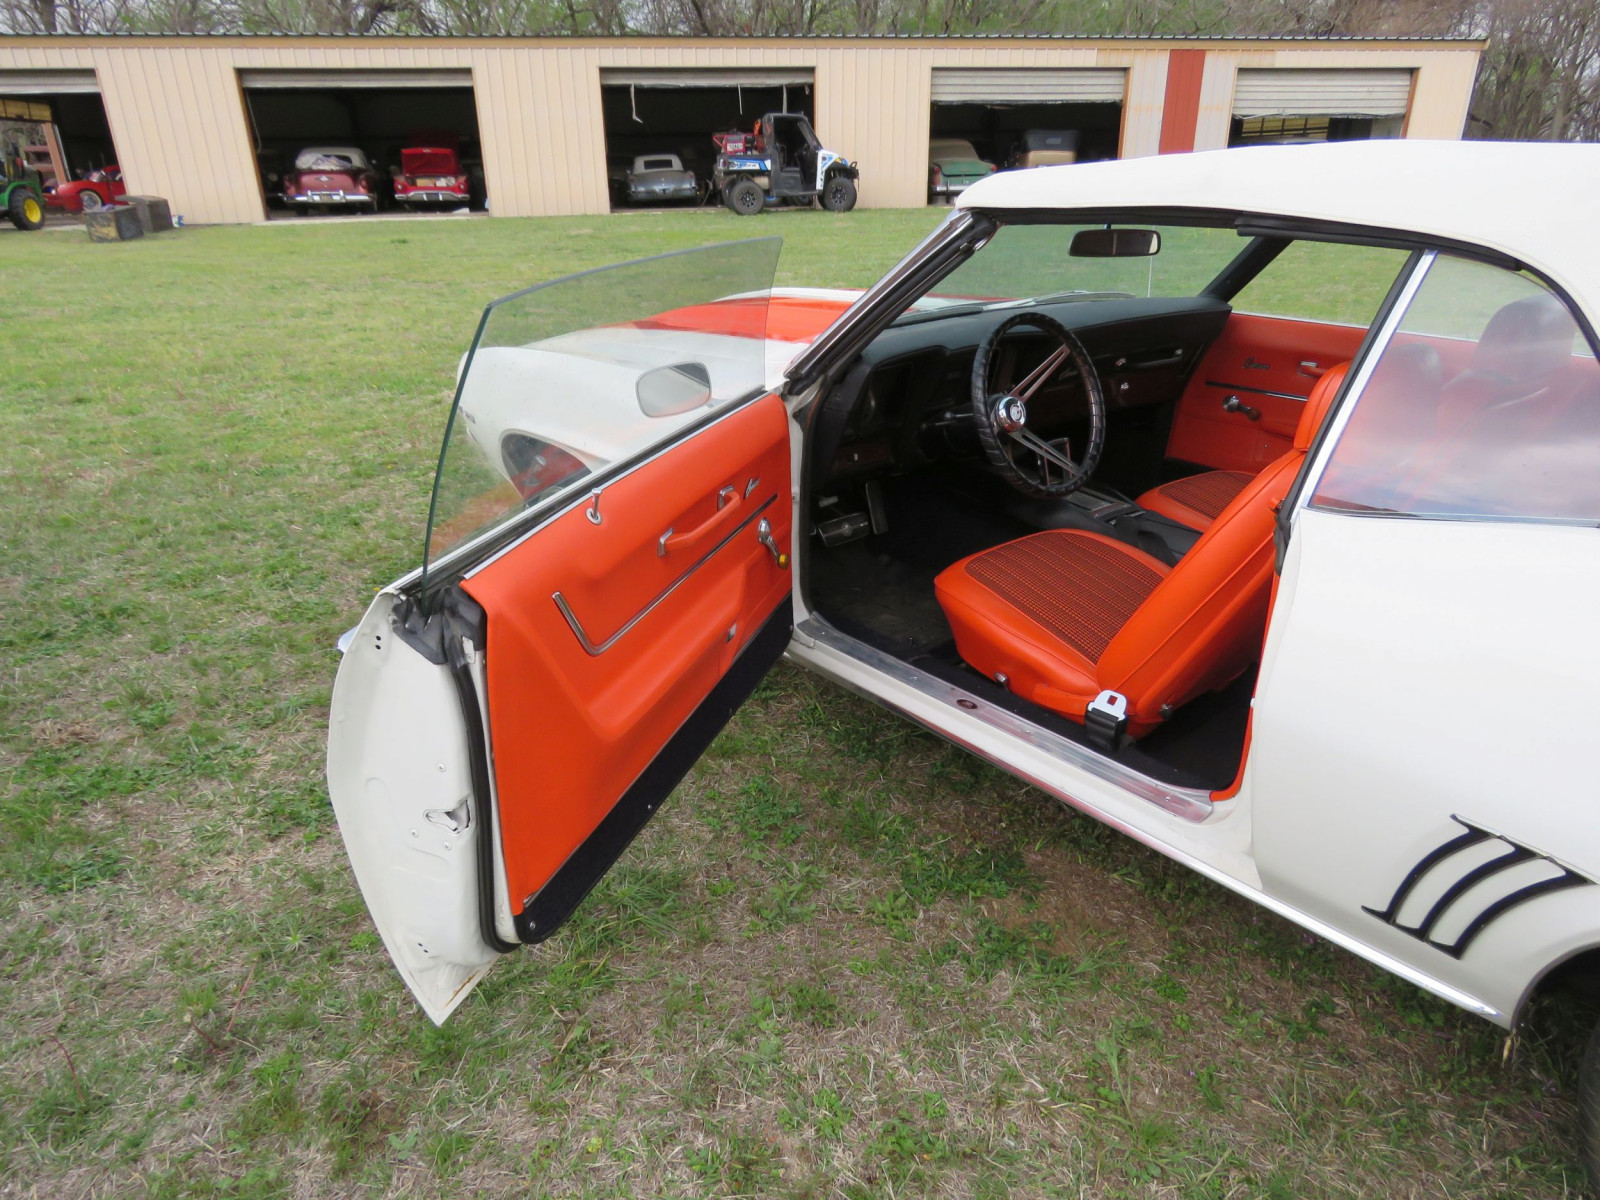 1969 CHEVROLET INDY PACECAR CAMARO CONVERTIBLE - Image 14